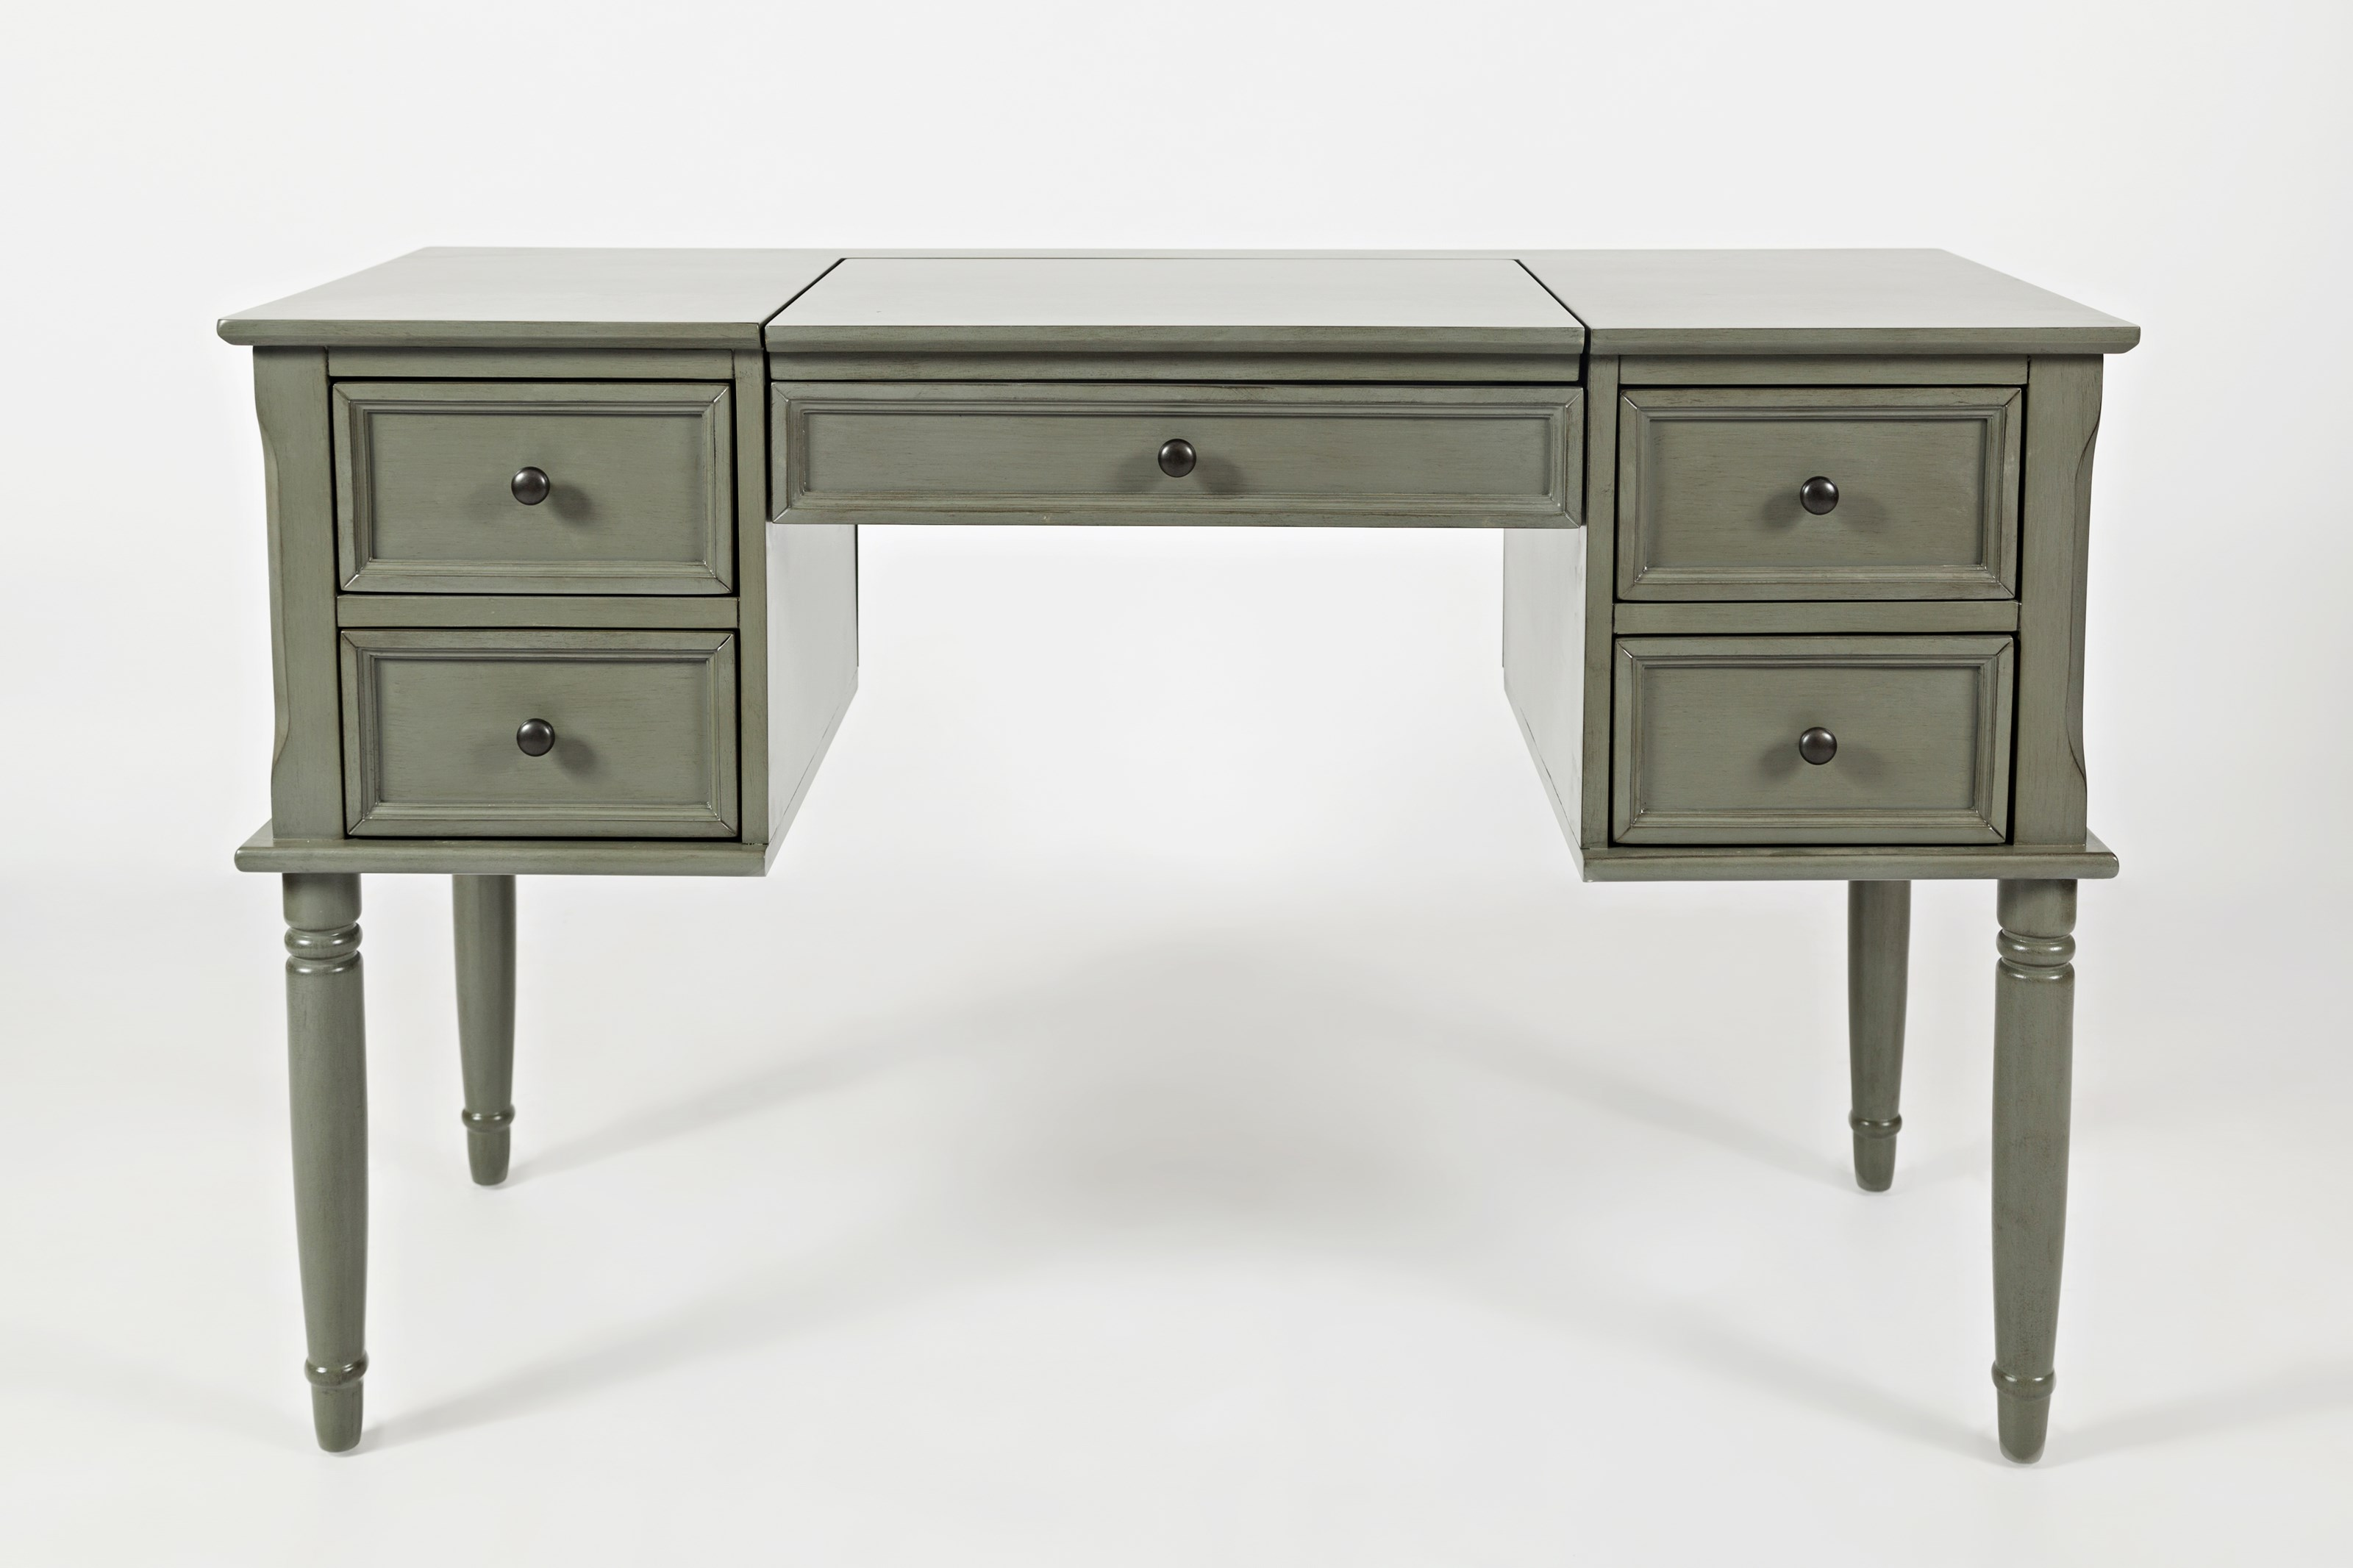 flip top desk. Jofran Avignon Youth Flip Top Desk - Item Number: 1618-40